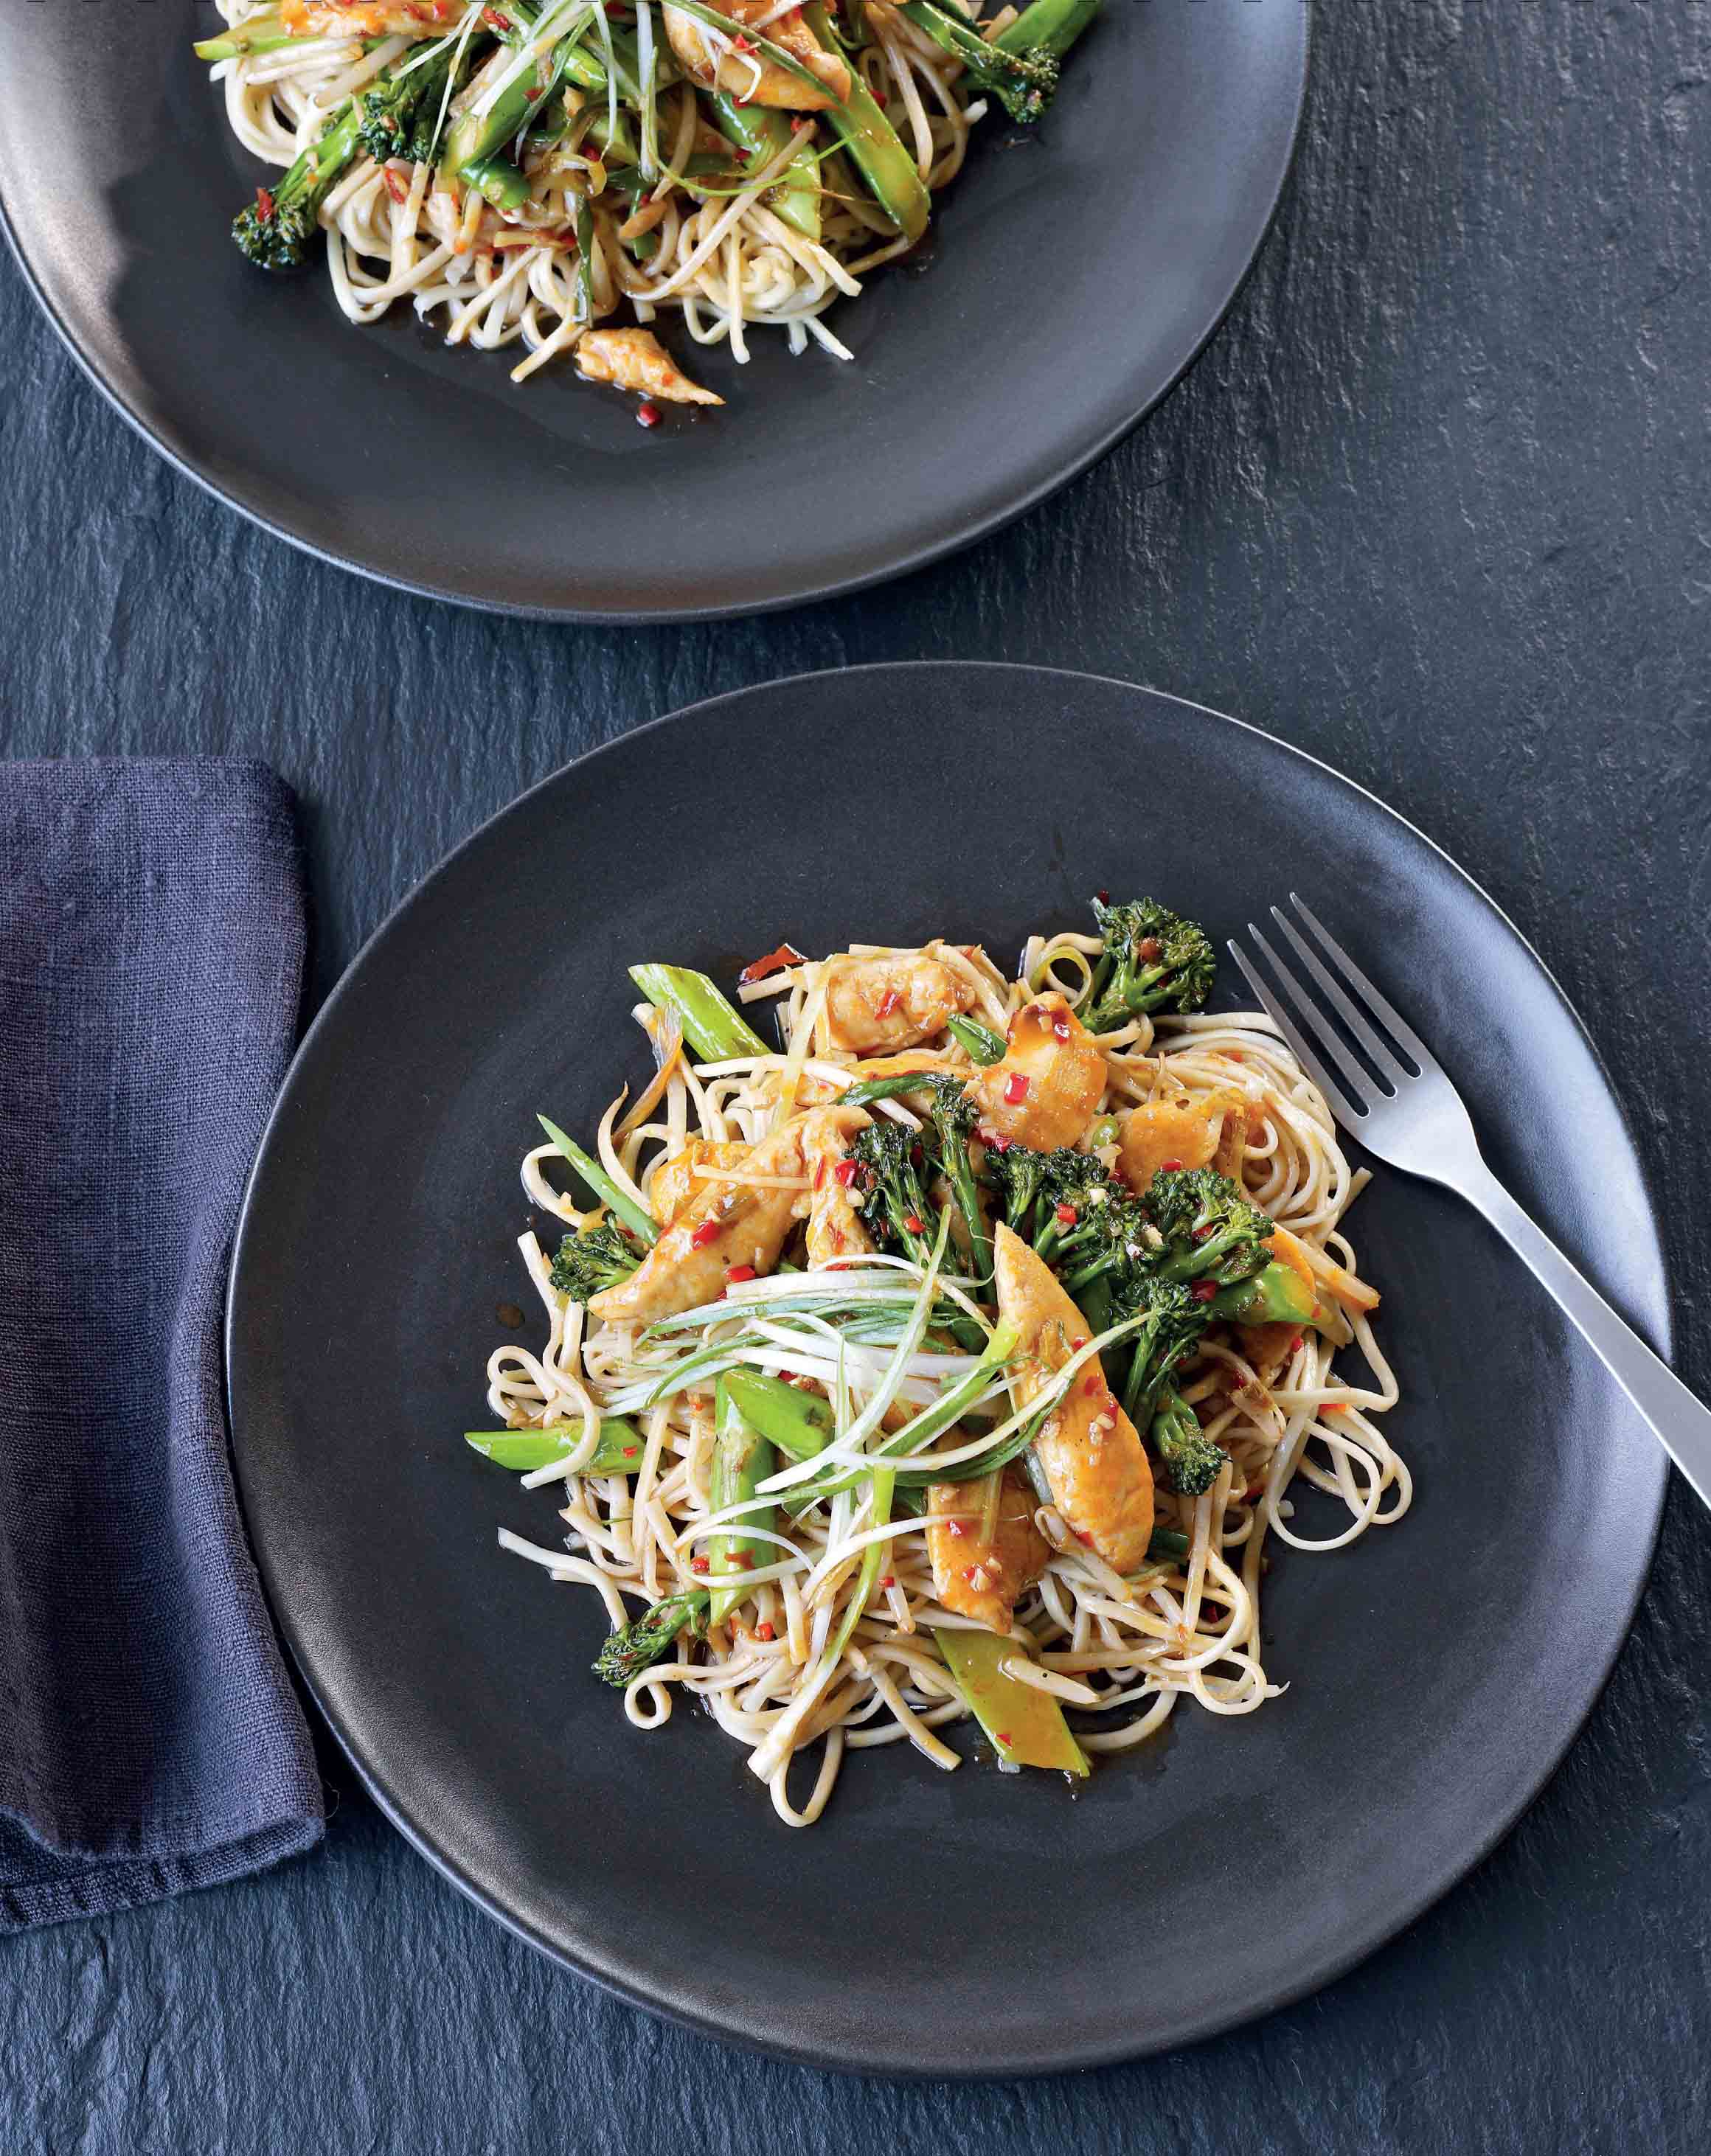 Chilli and ginger chicken noodles